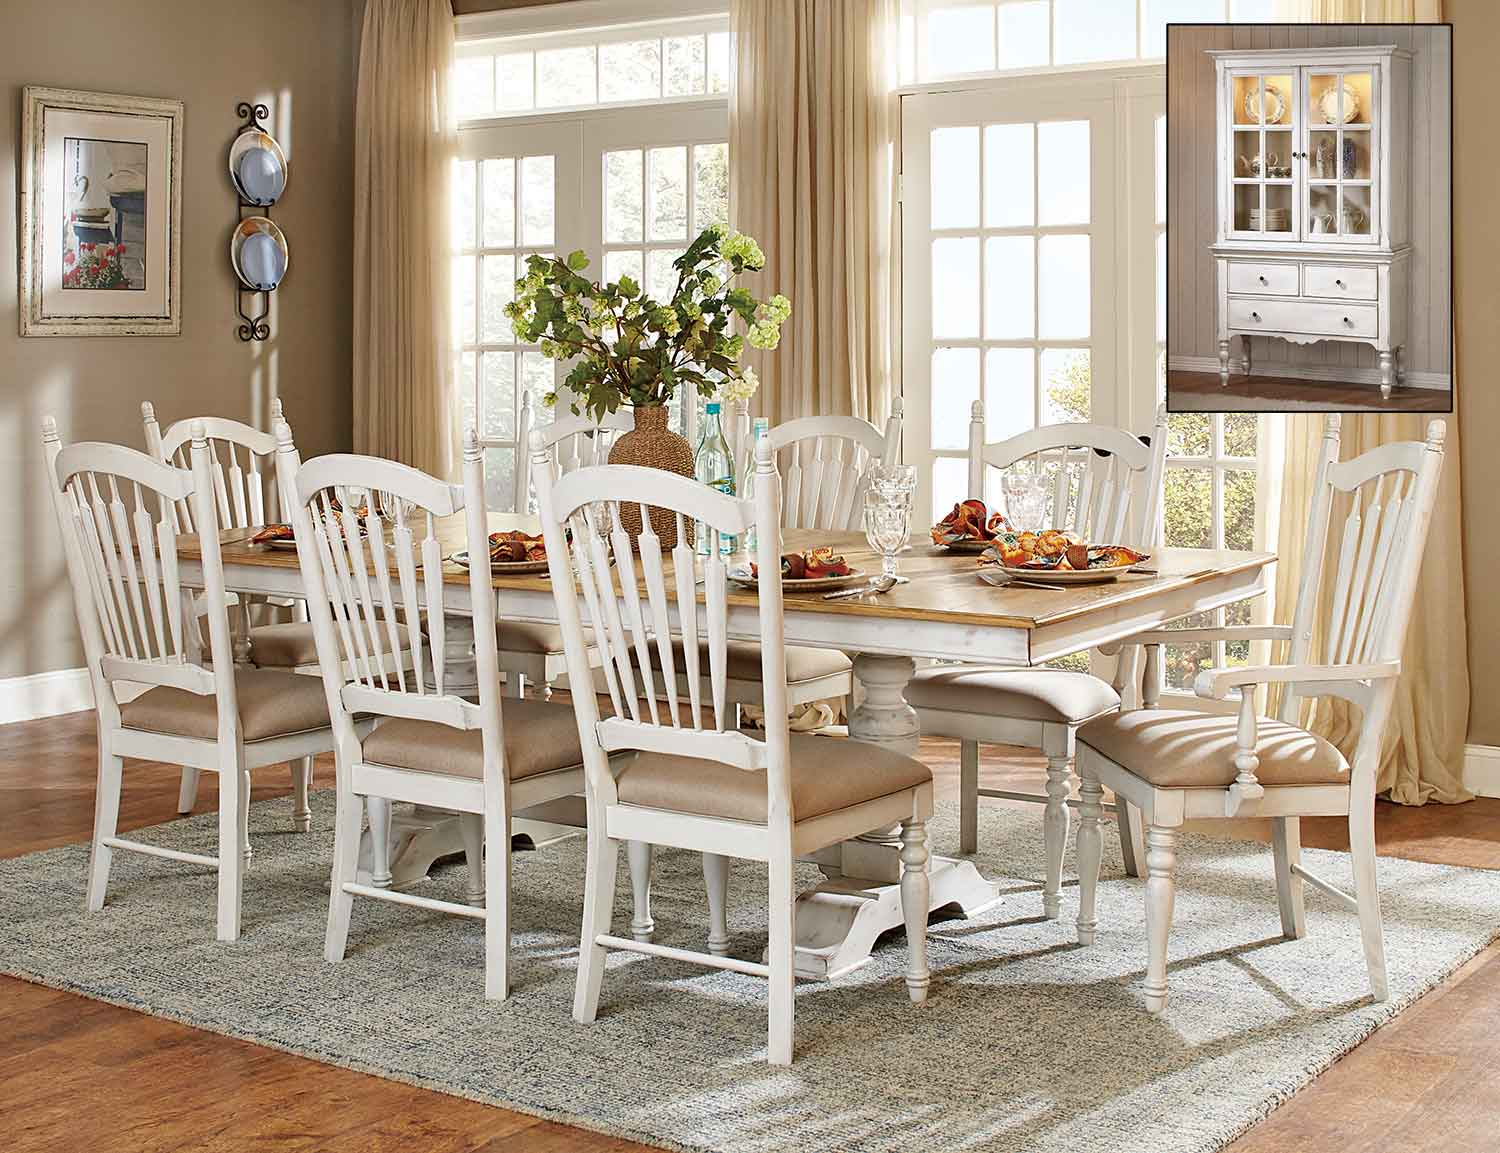 Homelegance Hollyhock Trestle Pedestal Dining Set - Distressed White/Oak